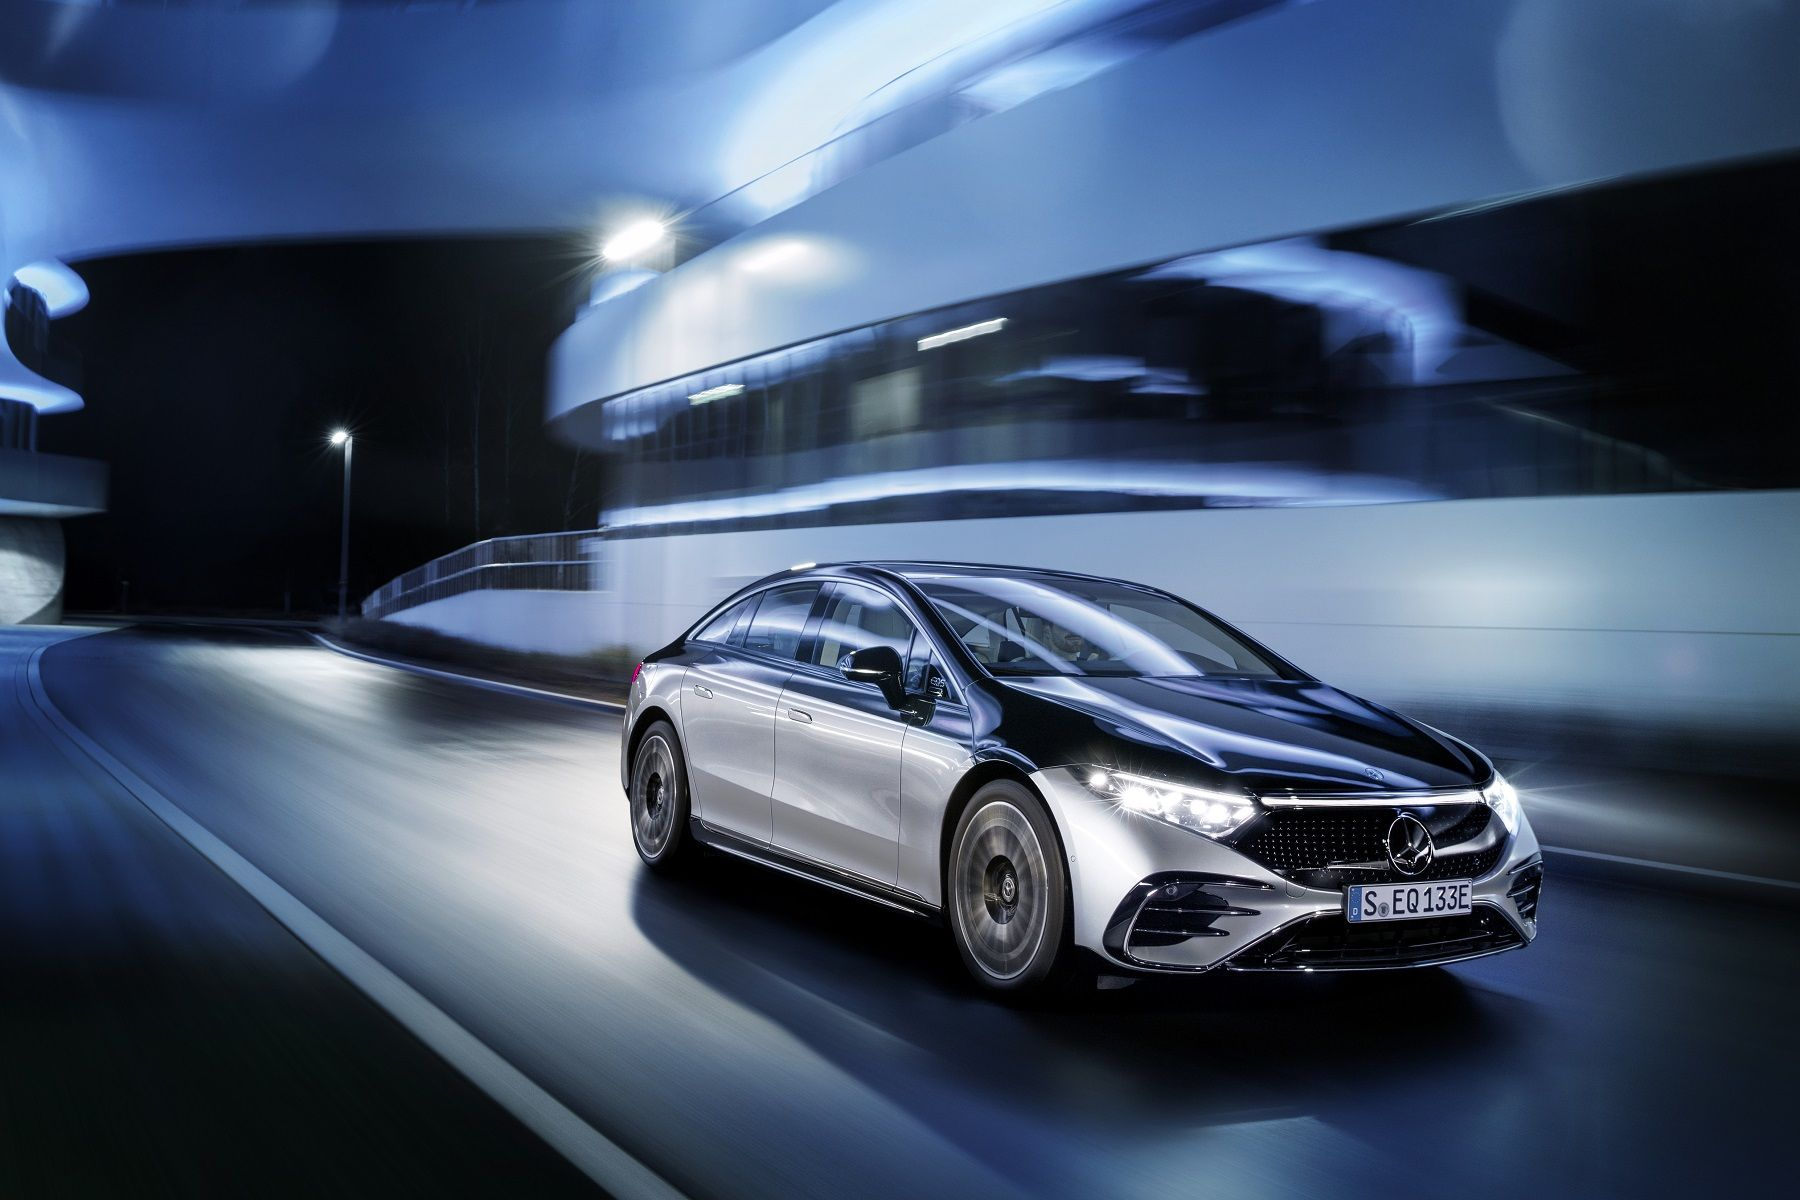 Mercedes-EQ, EQS 580 4MATIC, Exterieur, Farbe: hightechsilber/obsidianschwarz, AMG-Line, Edition 1;( Stromverbrauch kombiniert: 20,0-16,9 kWh/100 km; CO2-Emissionen kombiniert: 0 g/km);Stromverbrauch kombiniert: 20,0-16,9 kWh/100 km; CO2-Emissionen kombiniert: 0 g/km*Mercedes-EQ, EQS 580 4MATIC, Exterior, colour: high-tech silver/obsidian black, AMG-Line, Edition 1; (combined electrical consumption: 20.0-16.9 kWh/100 km; combined CO2 emissions: 0 g/km);Combined electrical consumption: 20.0-16.9 kWh/100 km